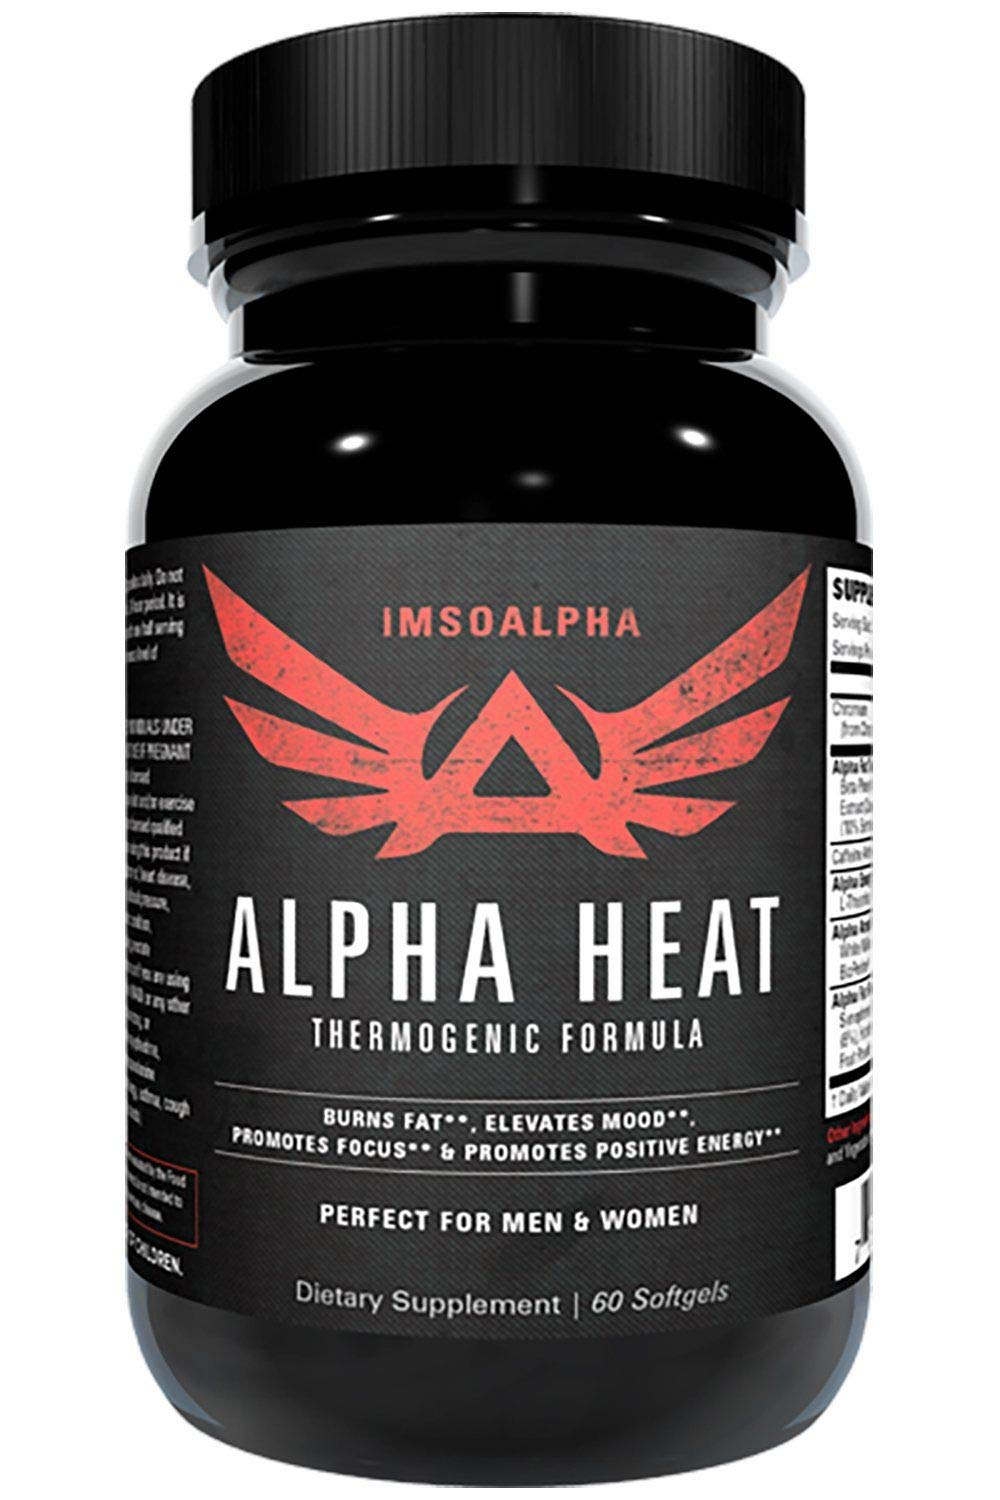 IMSOALPHA Alpha Heat Thermogenic Fat Burner for Increased Energy and Fat Shredding 60 Capsules